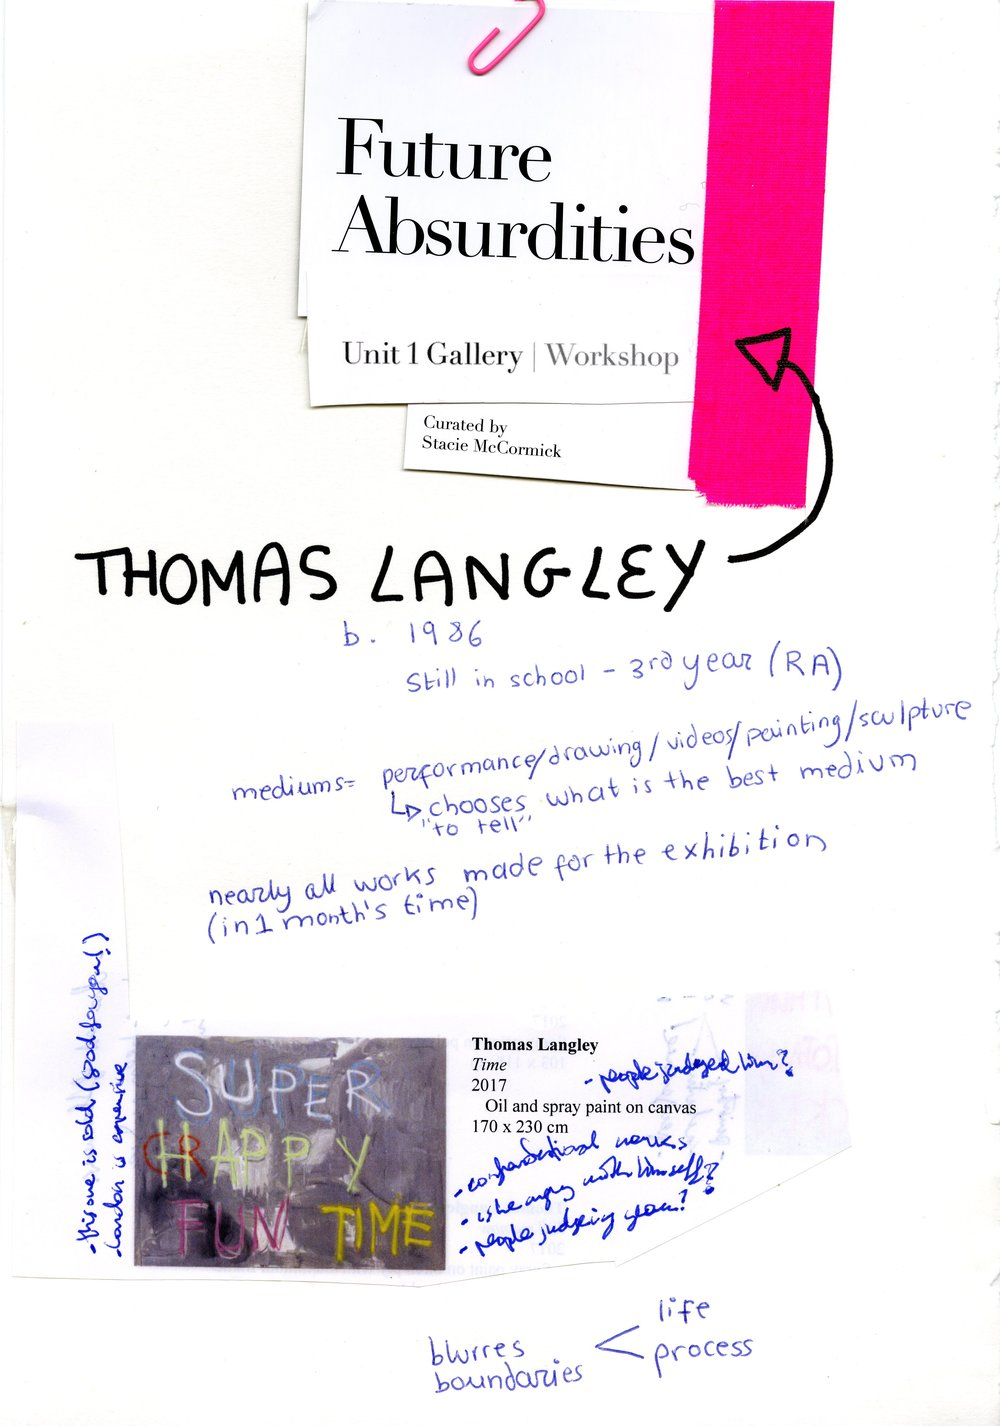 Thomas Langley, Future Absutdities, Unit 1 Gallery Workshop by dateagleart